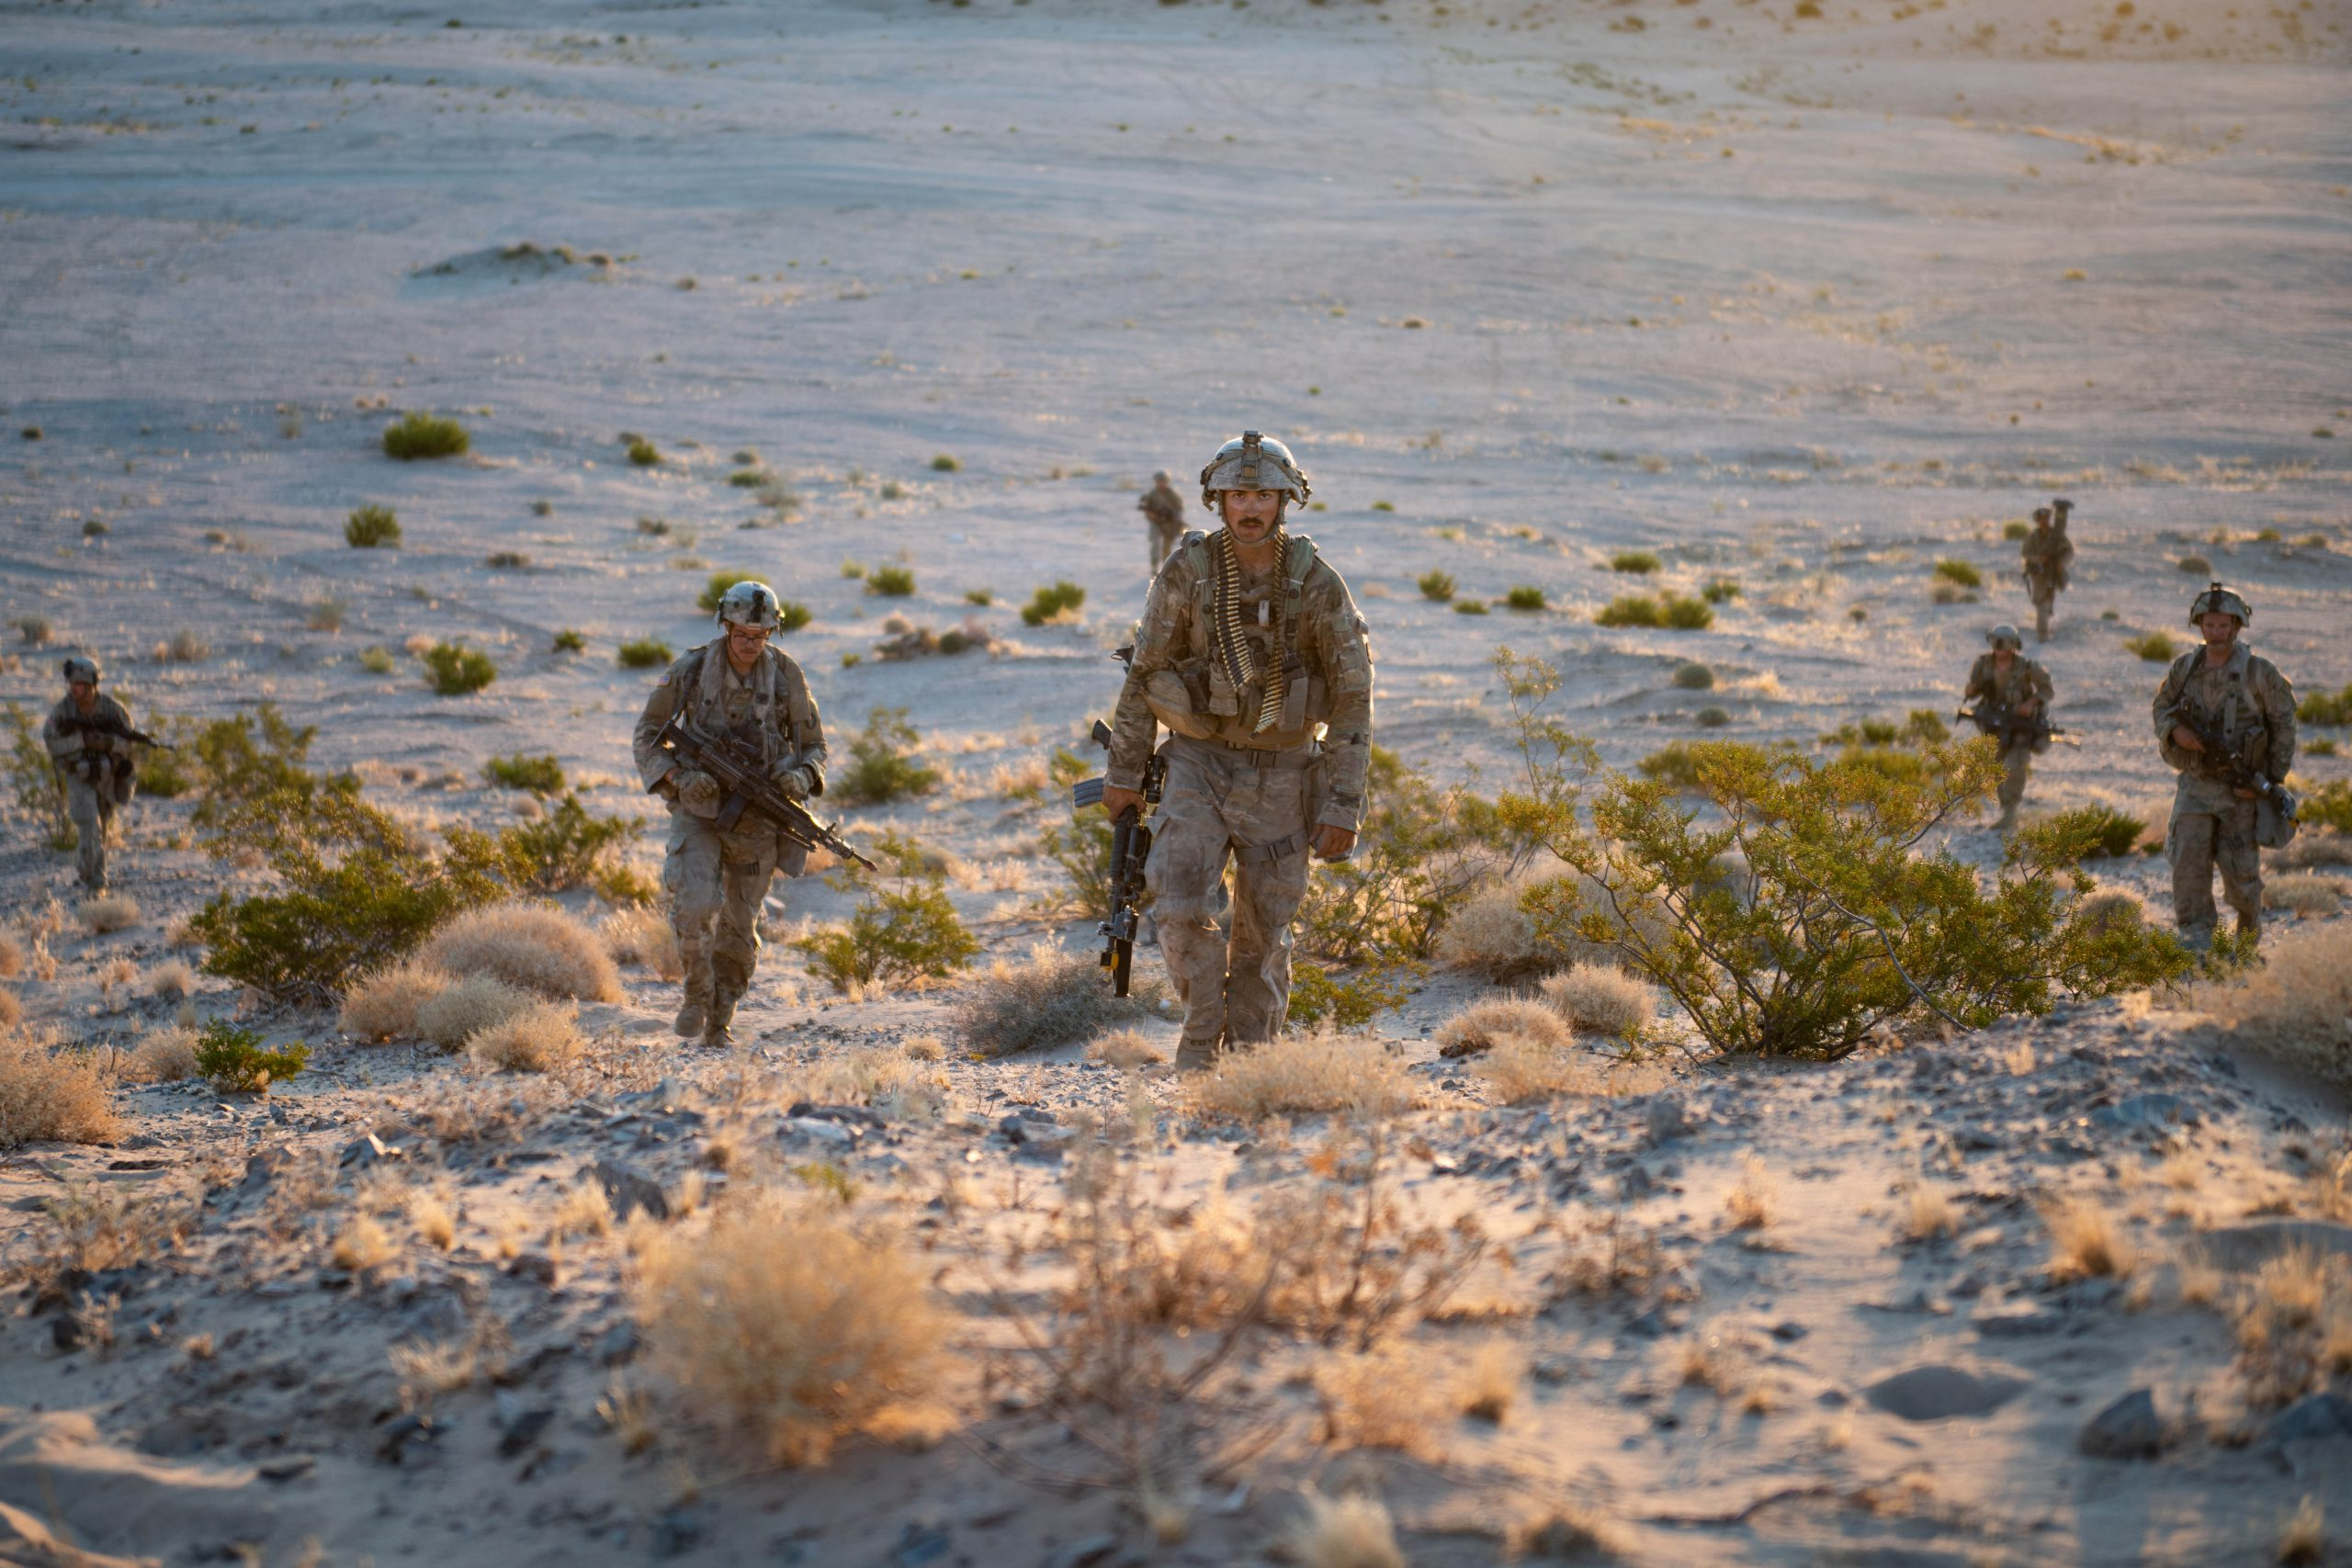 """Soldiers of the 1st Combined Arms Battalion, 194th Armor Regiment, climb a hill in the early morning hours of July 25, 2020, on a mission to gain control of the occupied city of Razish during a decisive-action training exercise in the desert environment of the National Training Center, Fort Irwin, California. The Soldiers started their mission under the cover of night in an effort to surprise the opposing force known as Blackhorse. Blackhorse Soldiers of the 11th Armored Cavalry Regiment-Blackhorse, are dedicated to testing units in """"The Box.""""    Brigade Soldiers are taking part in one of the U.S. Army's most challenging land force training exercises and have prepared for entering """"The Box"""" for over a year, including during their 2019 annual training at Fort Hood, Texas, where they completed an eXportable Combat Training Center exercise.    The 1st Combined Arms Battalion, 194th Armor Regiment, is a Minnesota Army National Guard battalion headquartered in Brainerd. The overall unit mission is to provide heavy armor and mechanized infantry ground combat power to the 1st Armored Brigade Combat Team, 34th Infantry Division. (U.S. Army photo by Sgt. Sebastian Nemec)"""